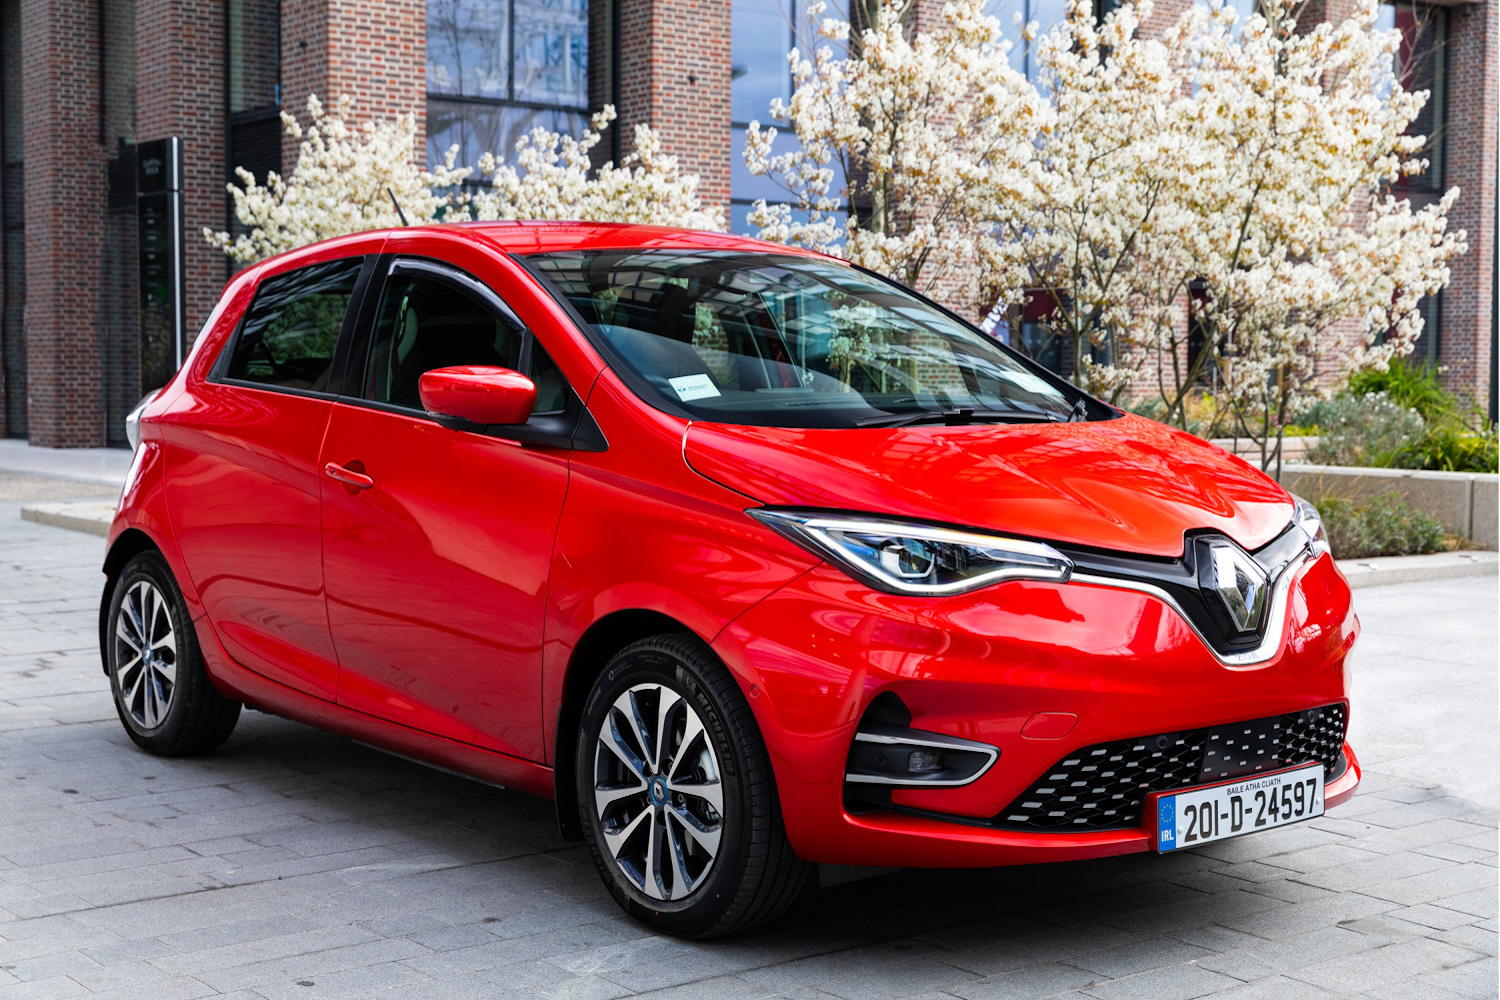 Car News | Renault Ireland 'Unplugged' sales event starts this week | CompleteCar.ie